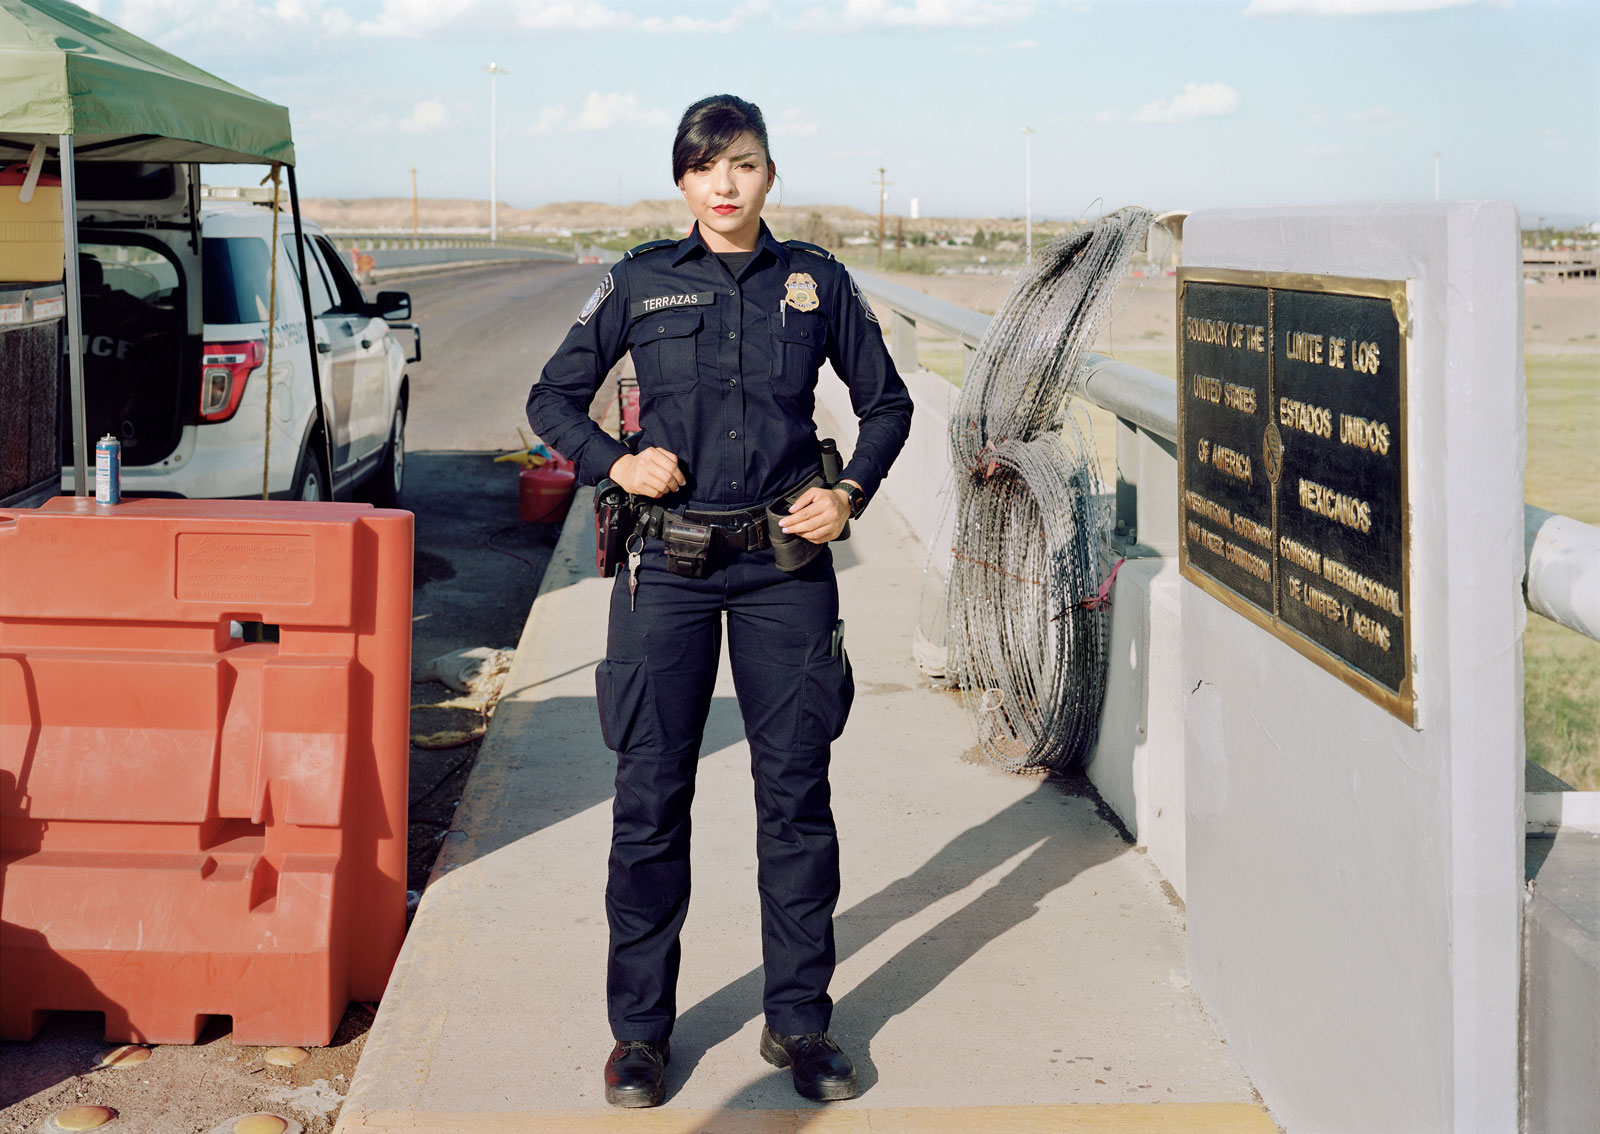 A woman in uniform stands with hands on hips